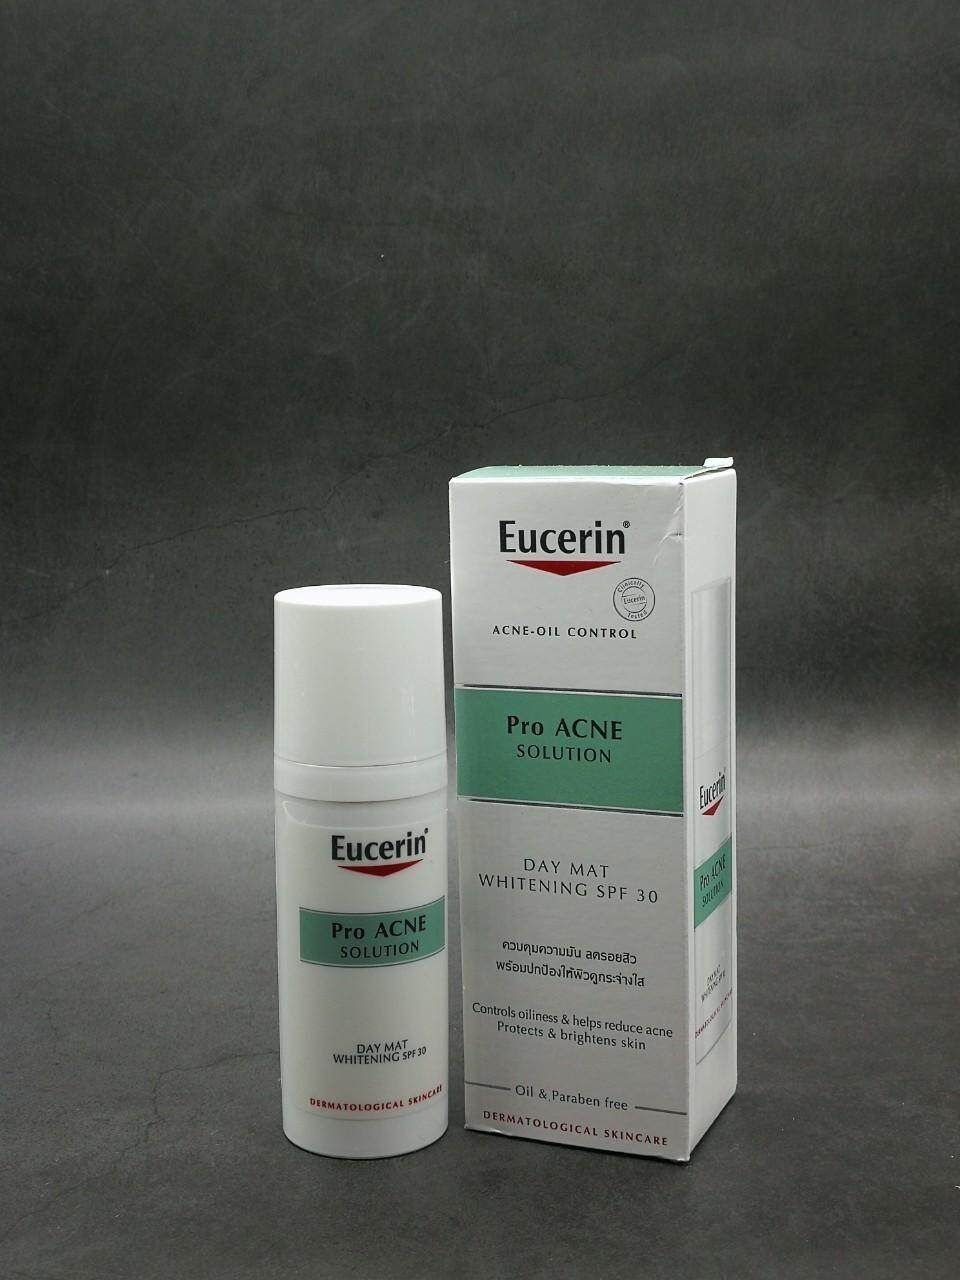 [012] Eucerin Pro Acne Solution Day Mat Whitening Spf30.